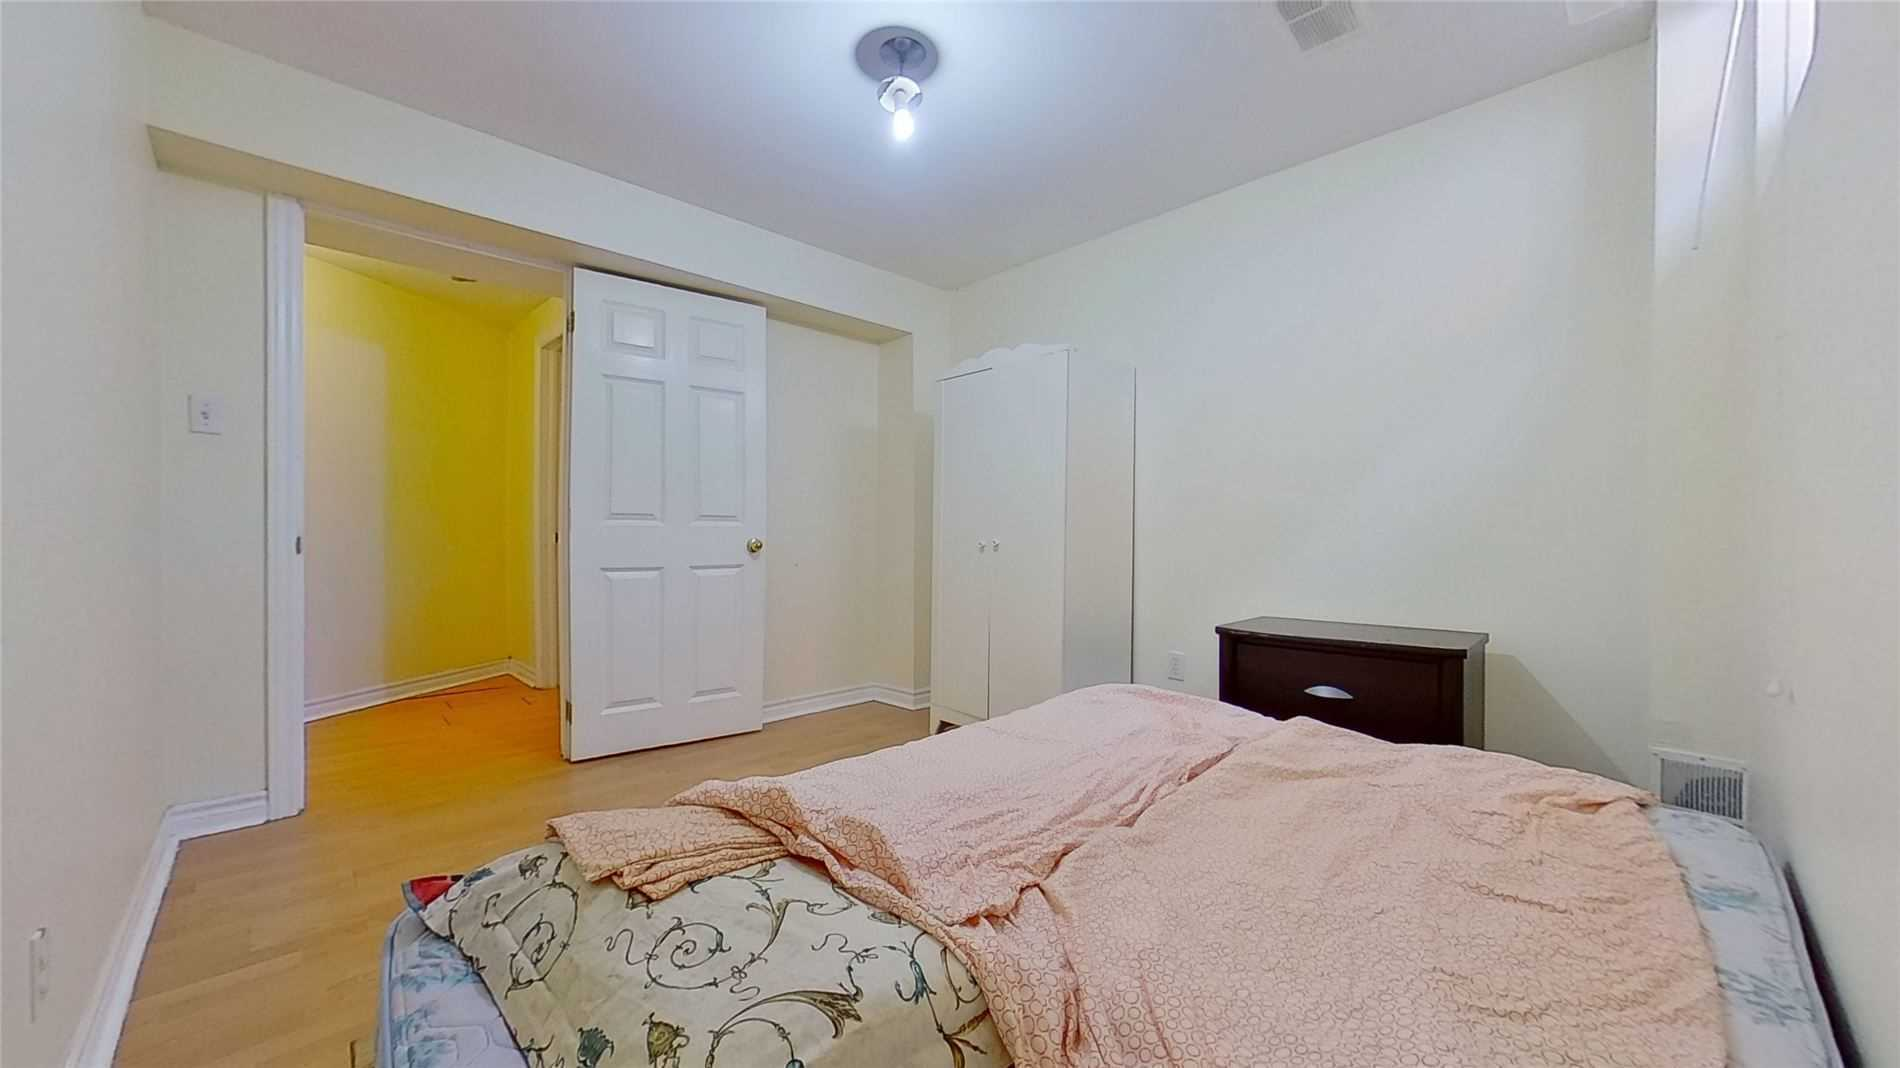 Image 2 of 16 showing inside of 2 Bedroom Detached 2-Storey for Lease at 5 Whalen Crt, Richmond Hill L4C9T5